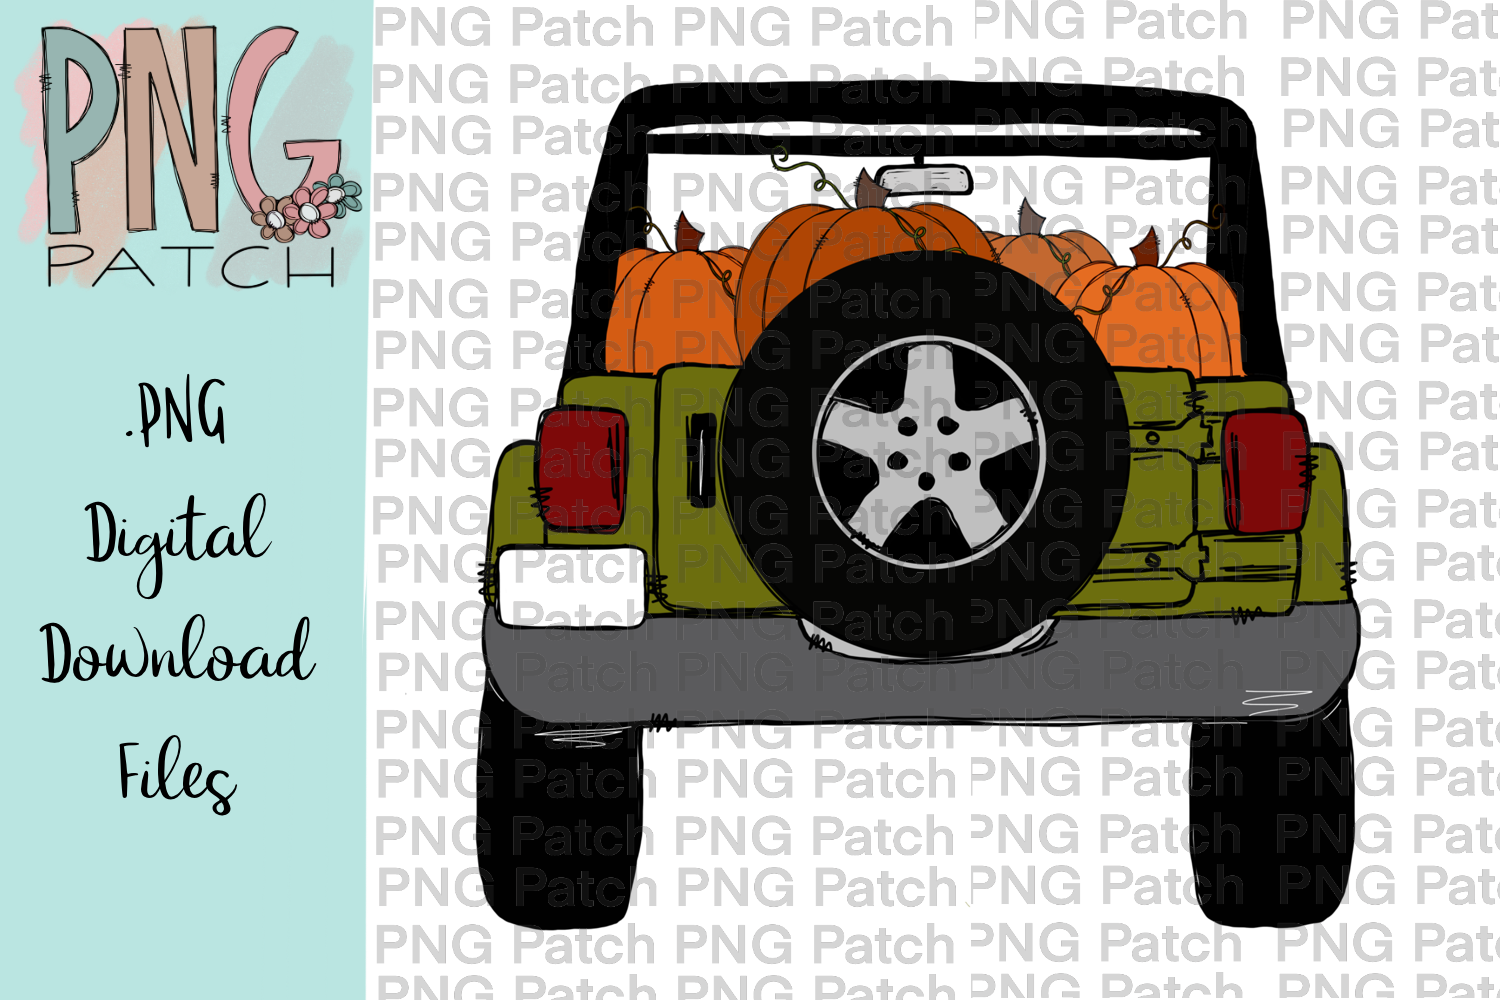 Green Topless SUV with Pumpkins, Fall PNG File example image 1